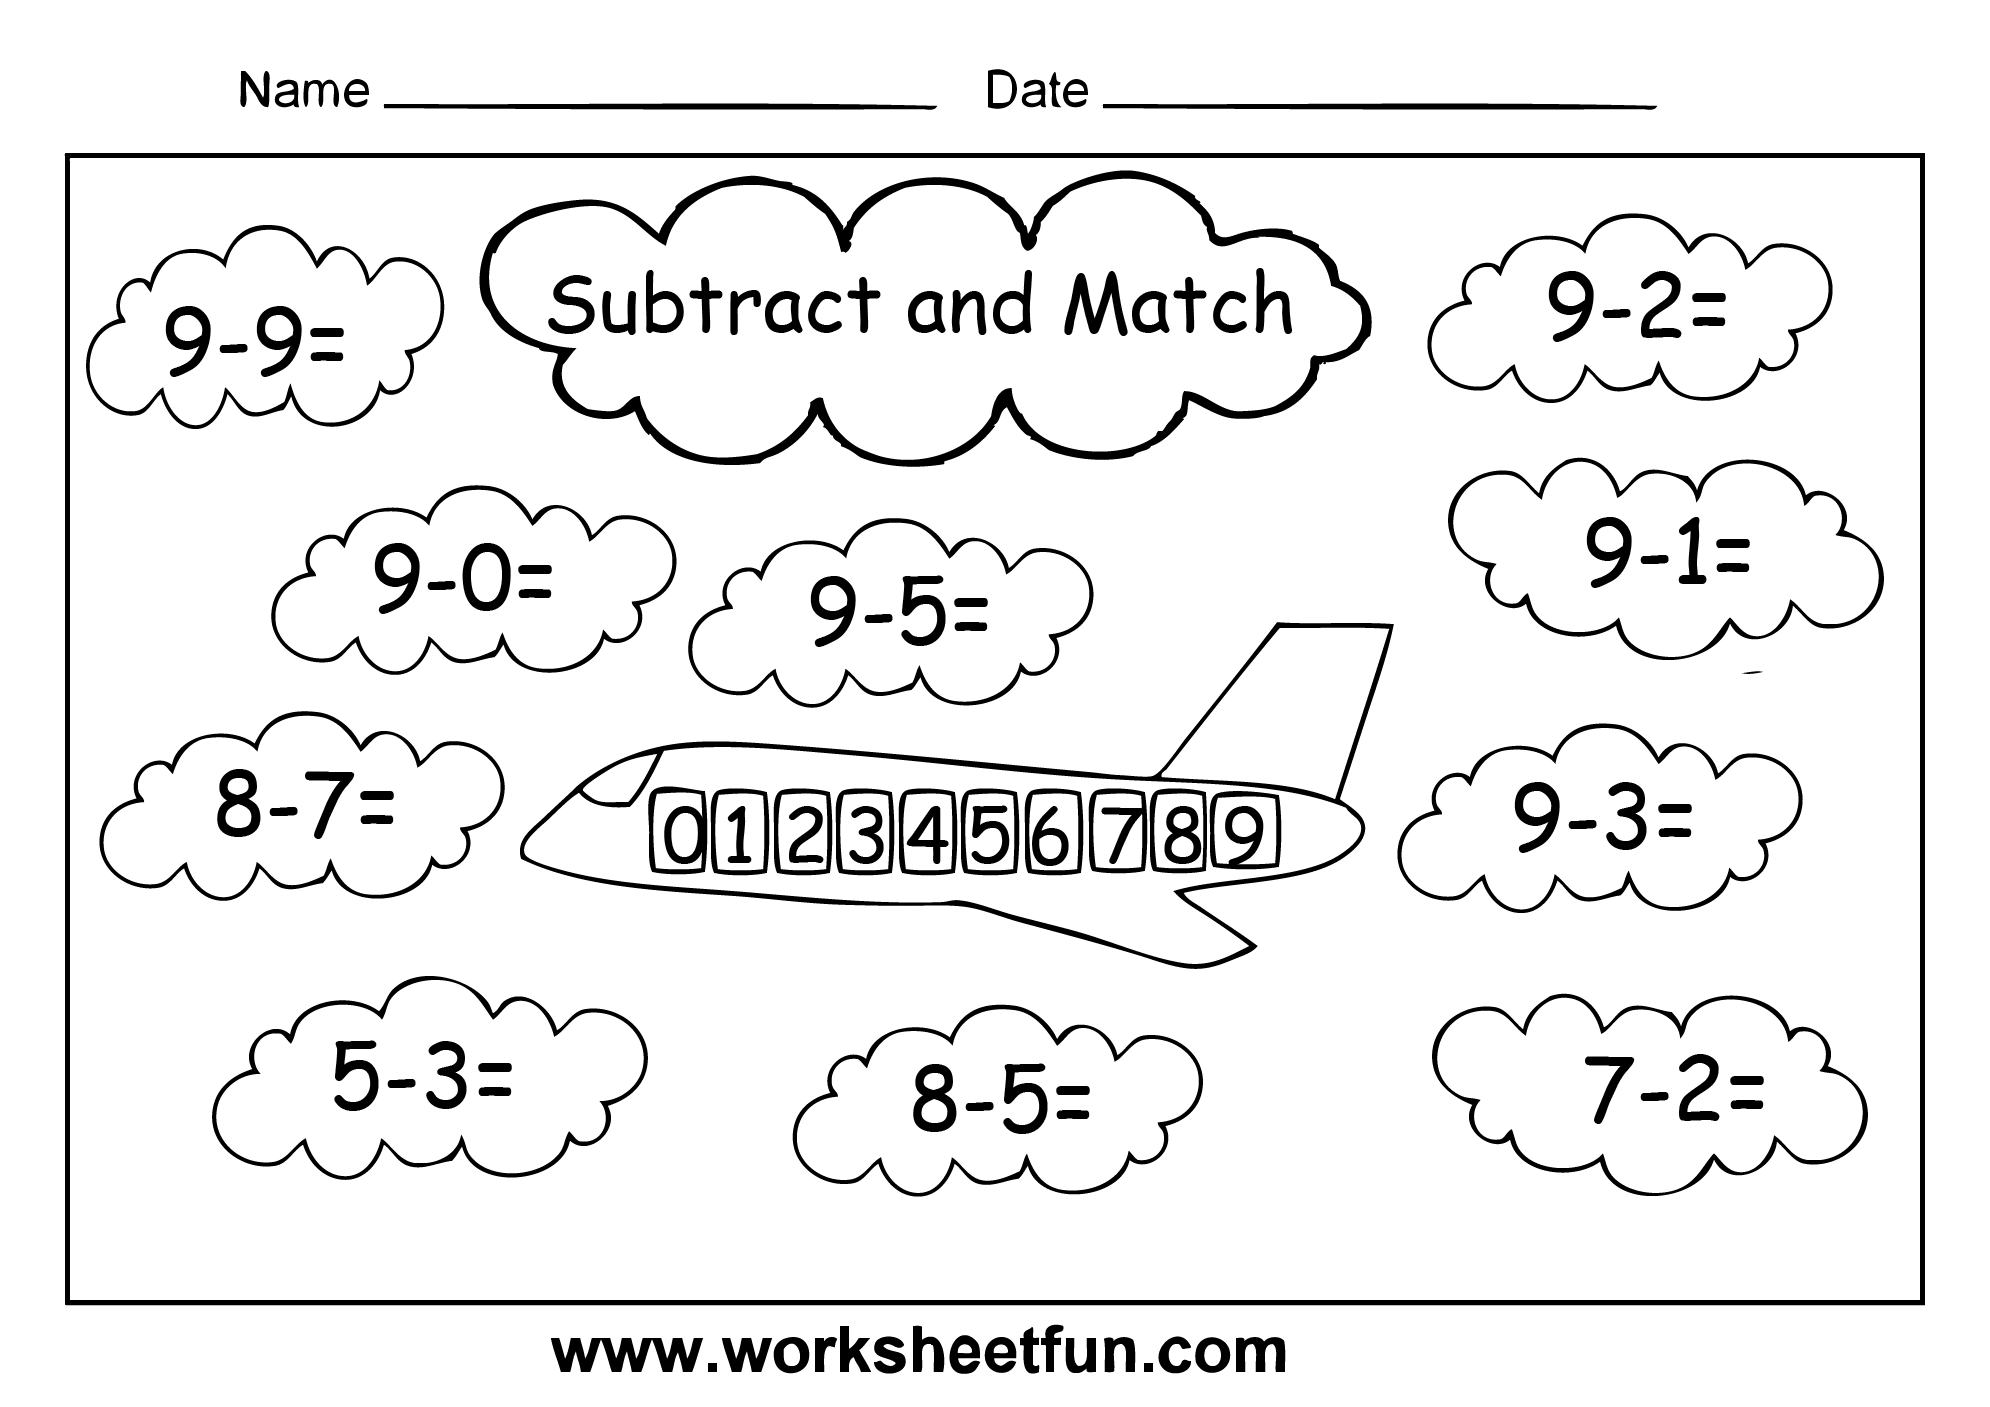 Worksheet Printable Grade 1 Worksheets noconformity free worksheet page 2 online worksheets for grade 1 1000 images about on pinterest first math subtraction